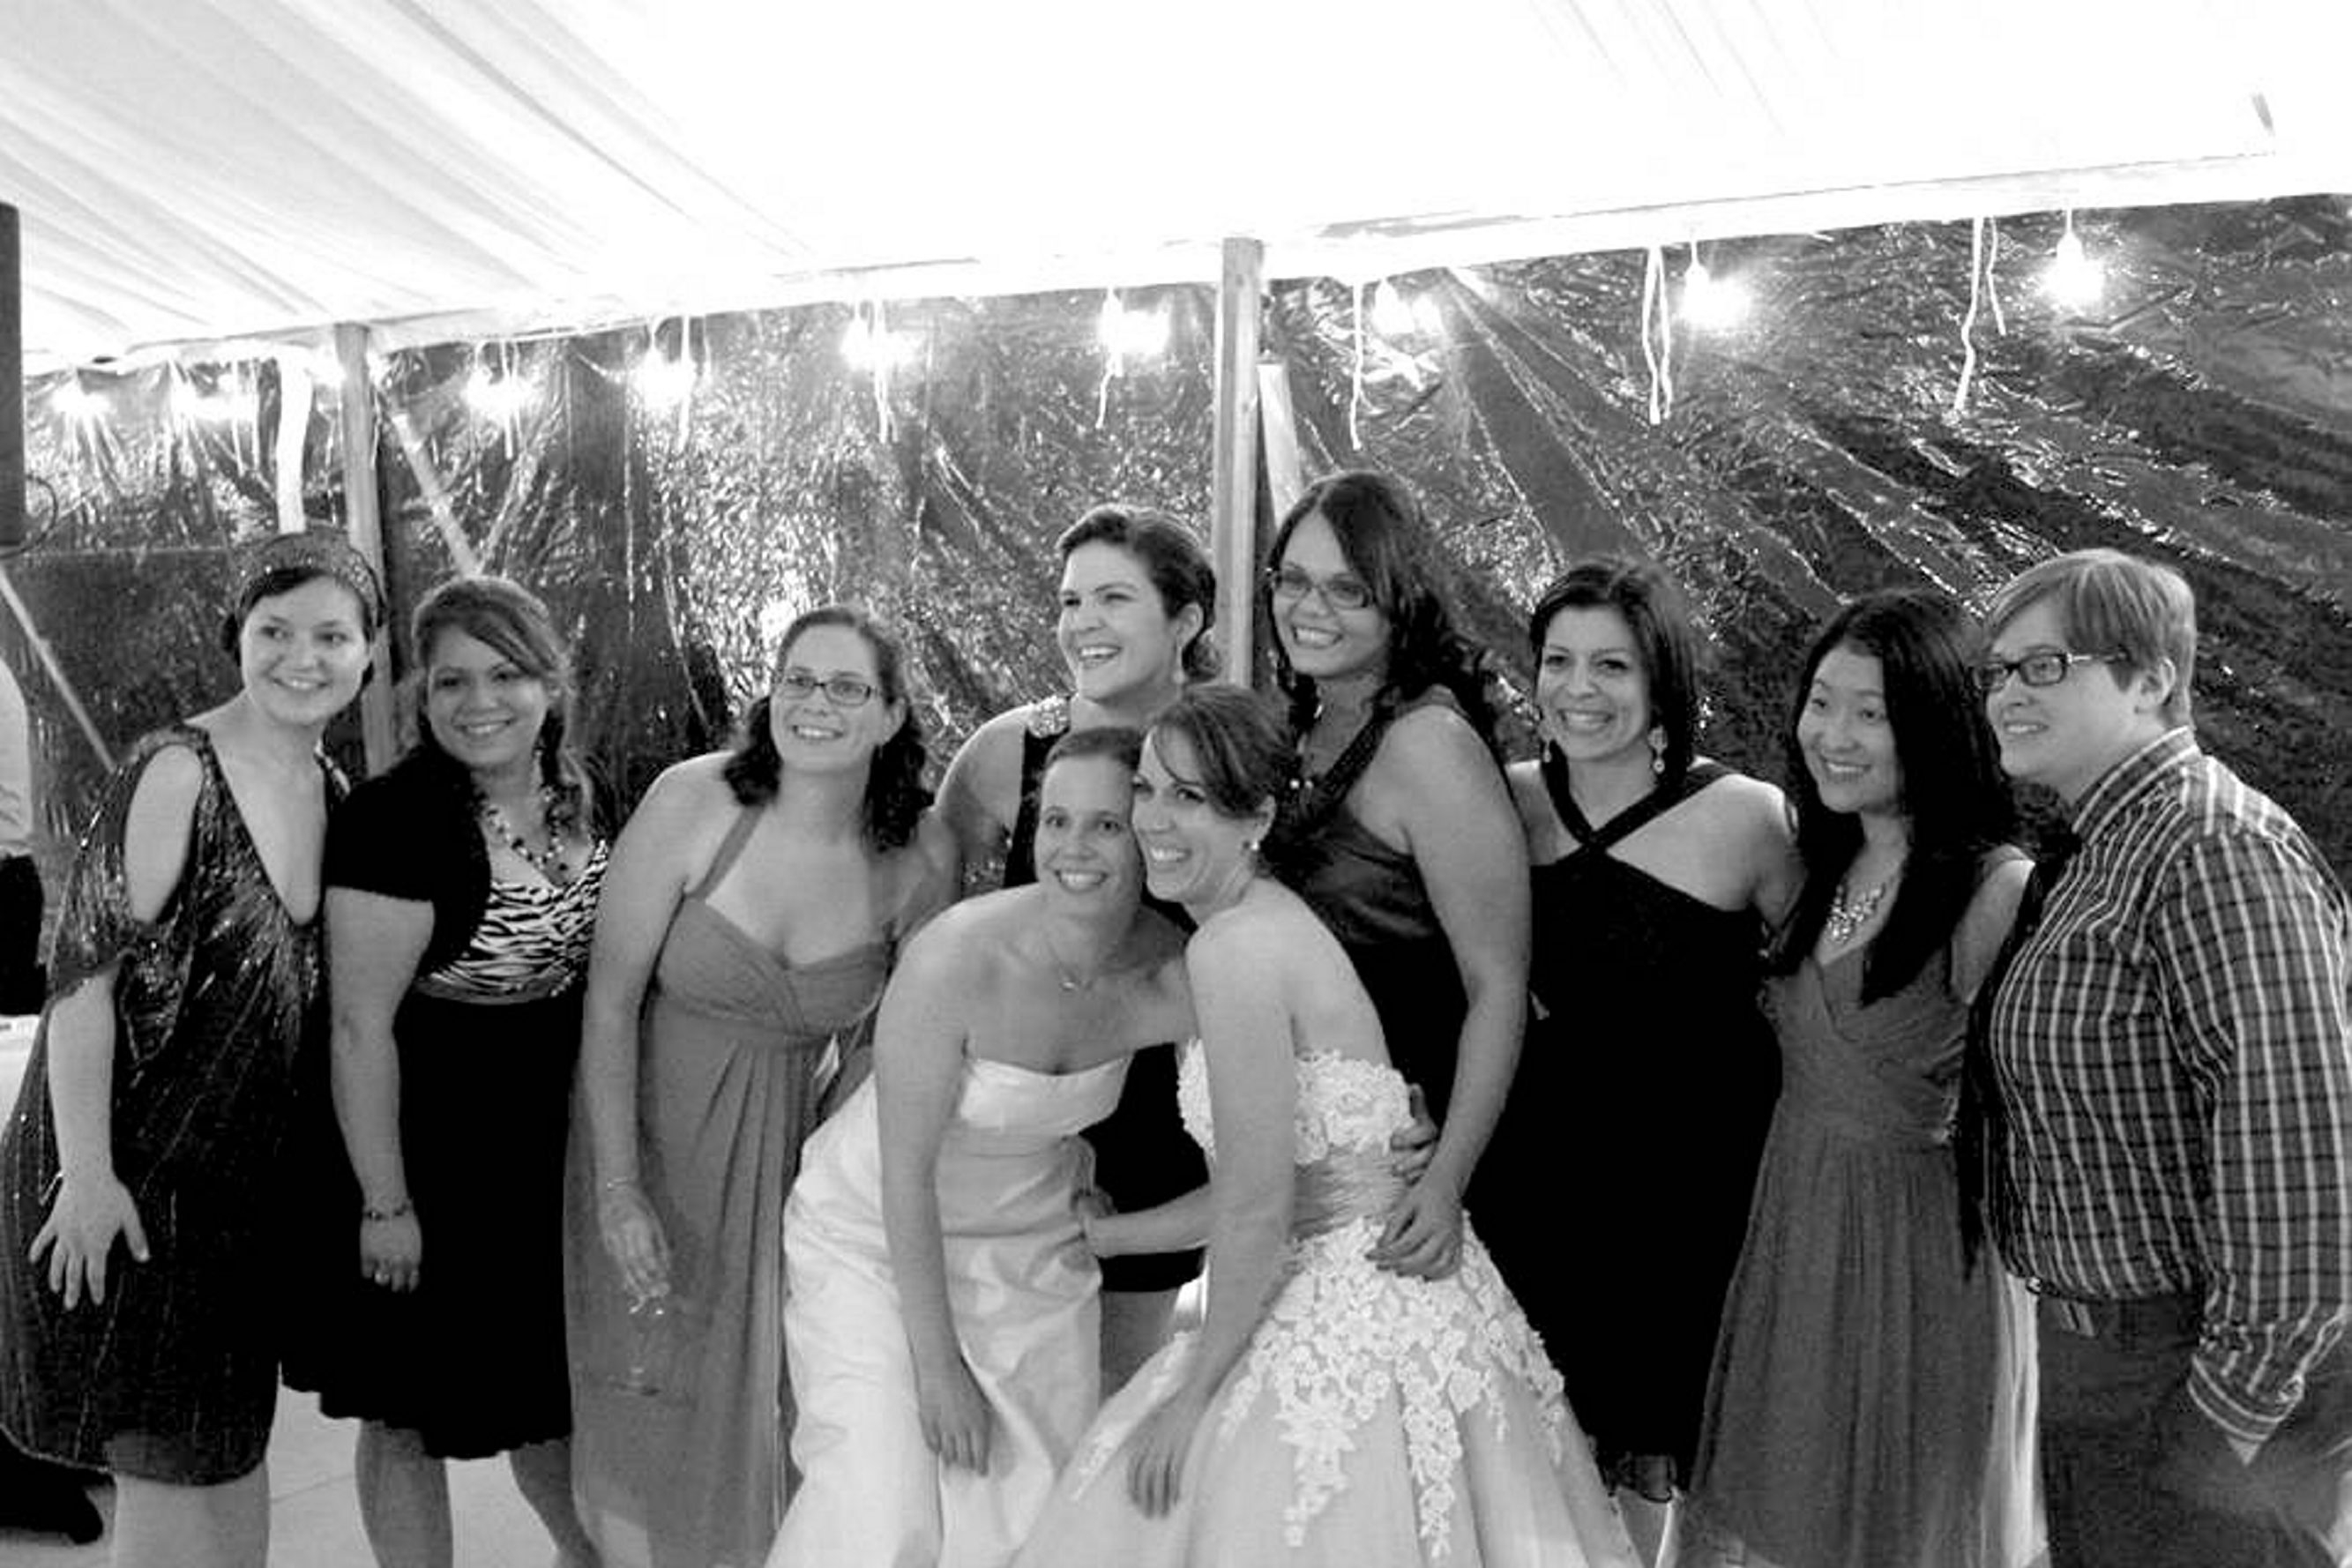 Newlyweds Lynn Zlotkowski, left, and Lisa Hardej are shown at their wedding reception surrounded by Sacred Heart graduates and family. The private Buffalo school refused to put news of Zlotkowski's wedding in the alumni publication.